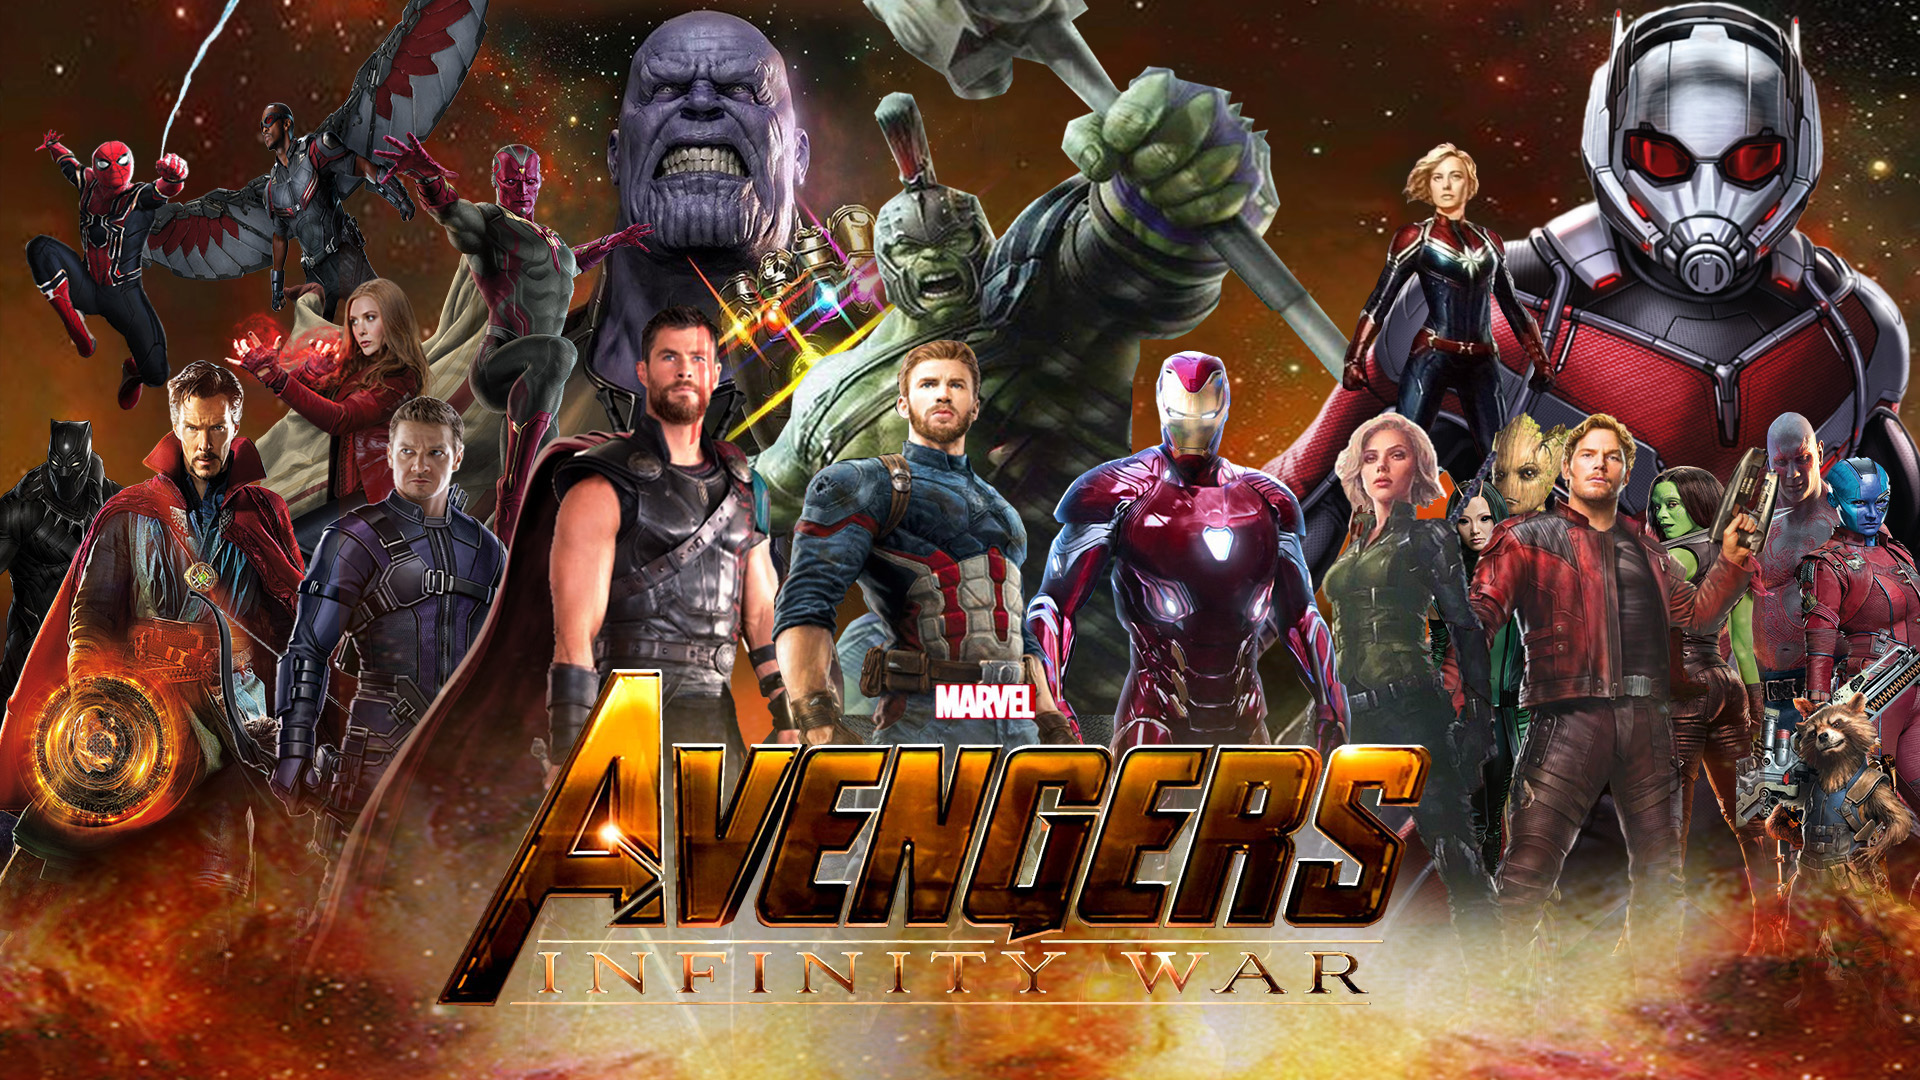 Avengers: Infinity War Wallpaper by The